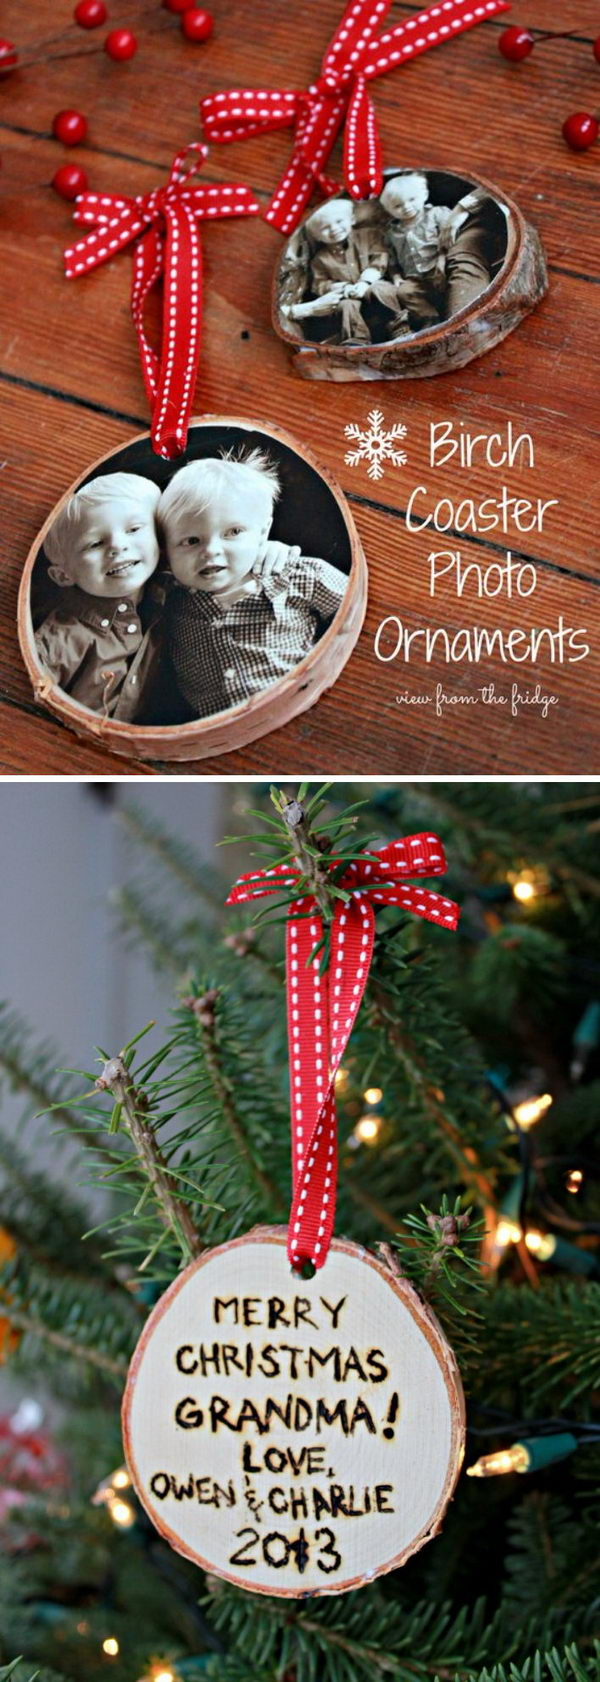 DIY Wood Slice Photo Ornament.